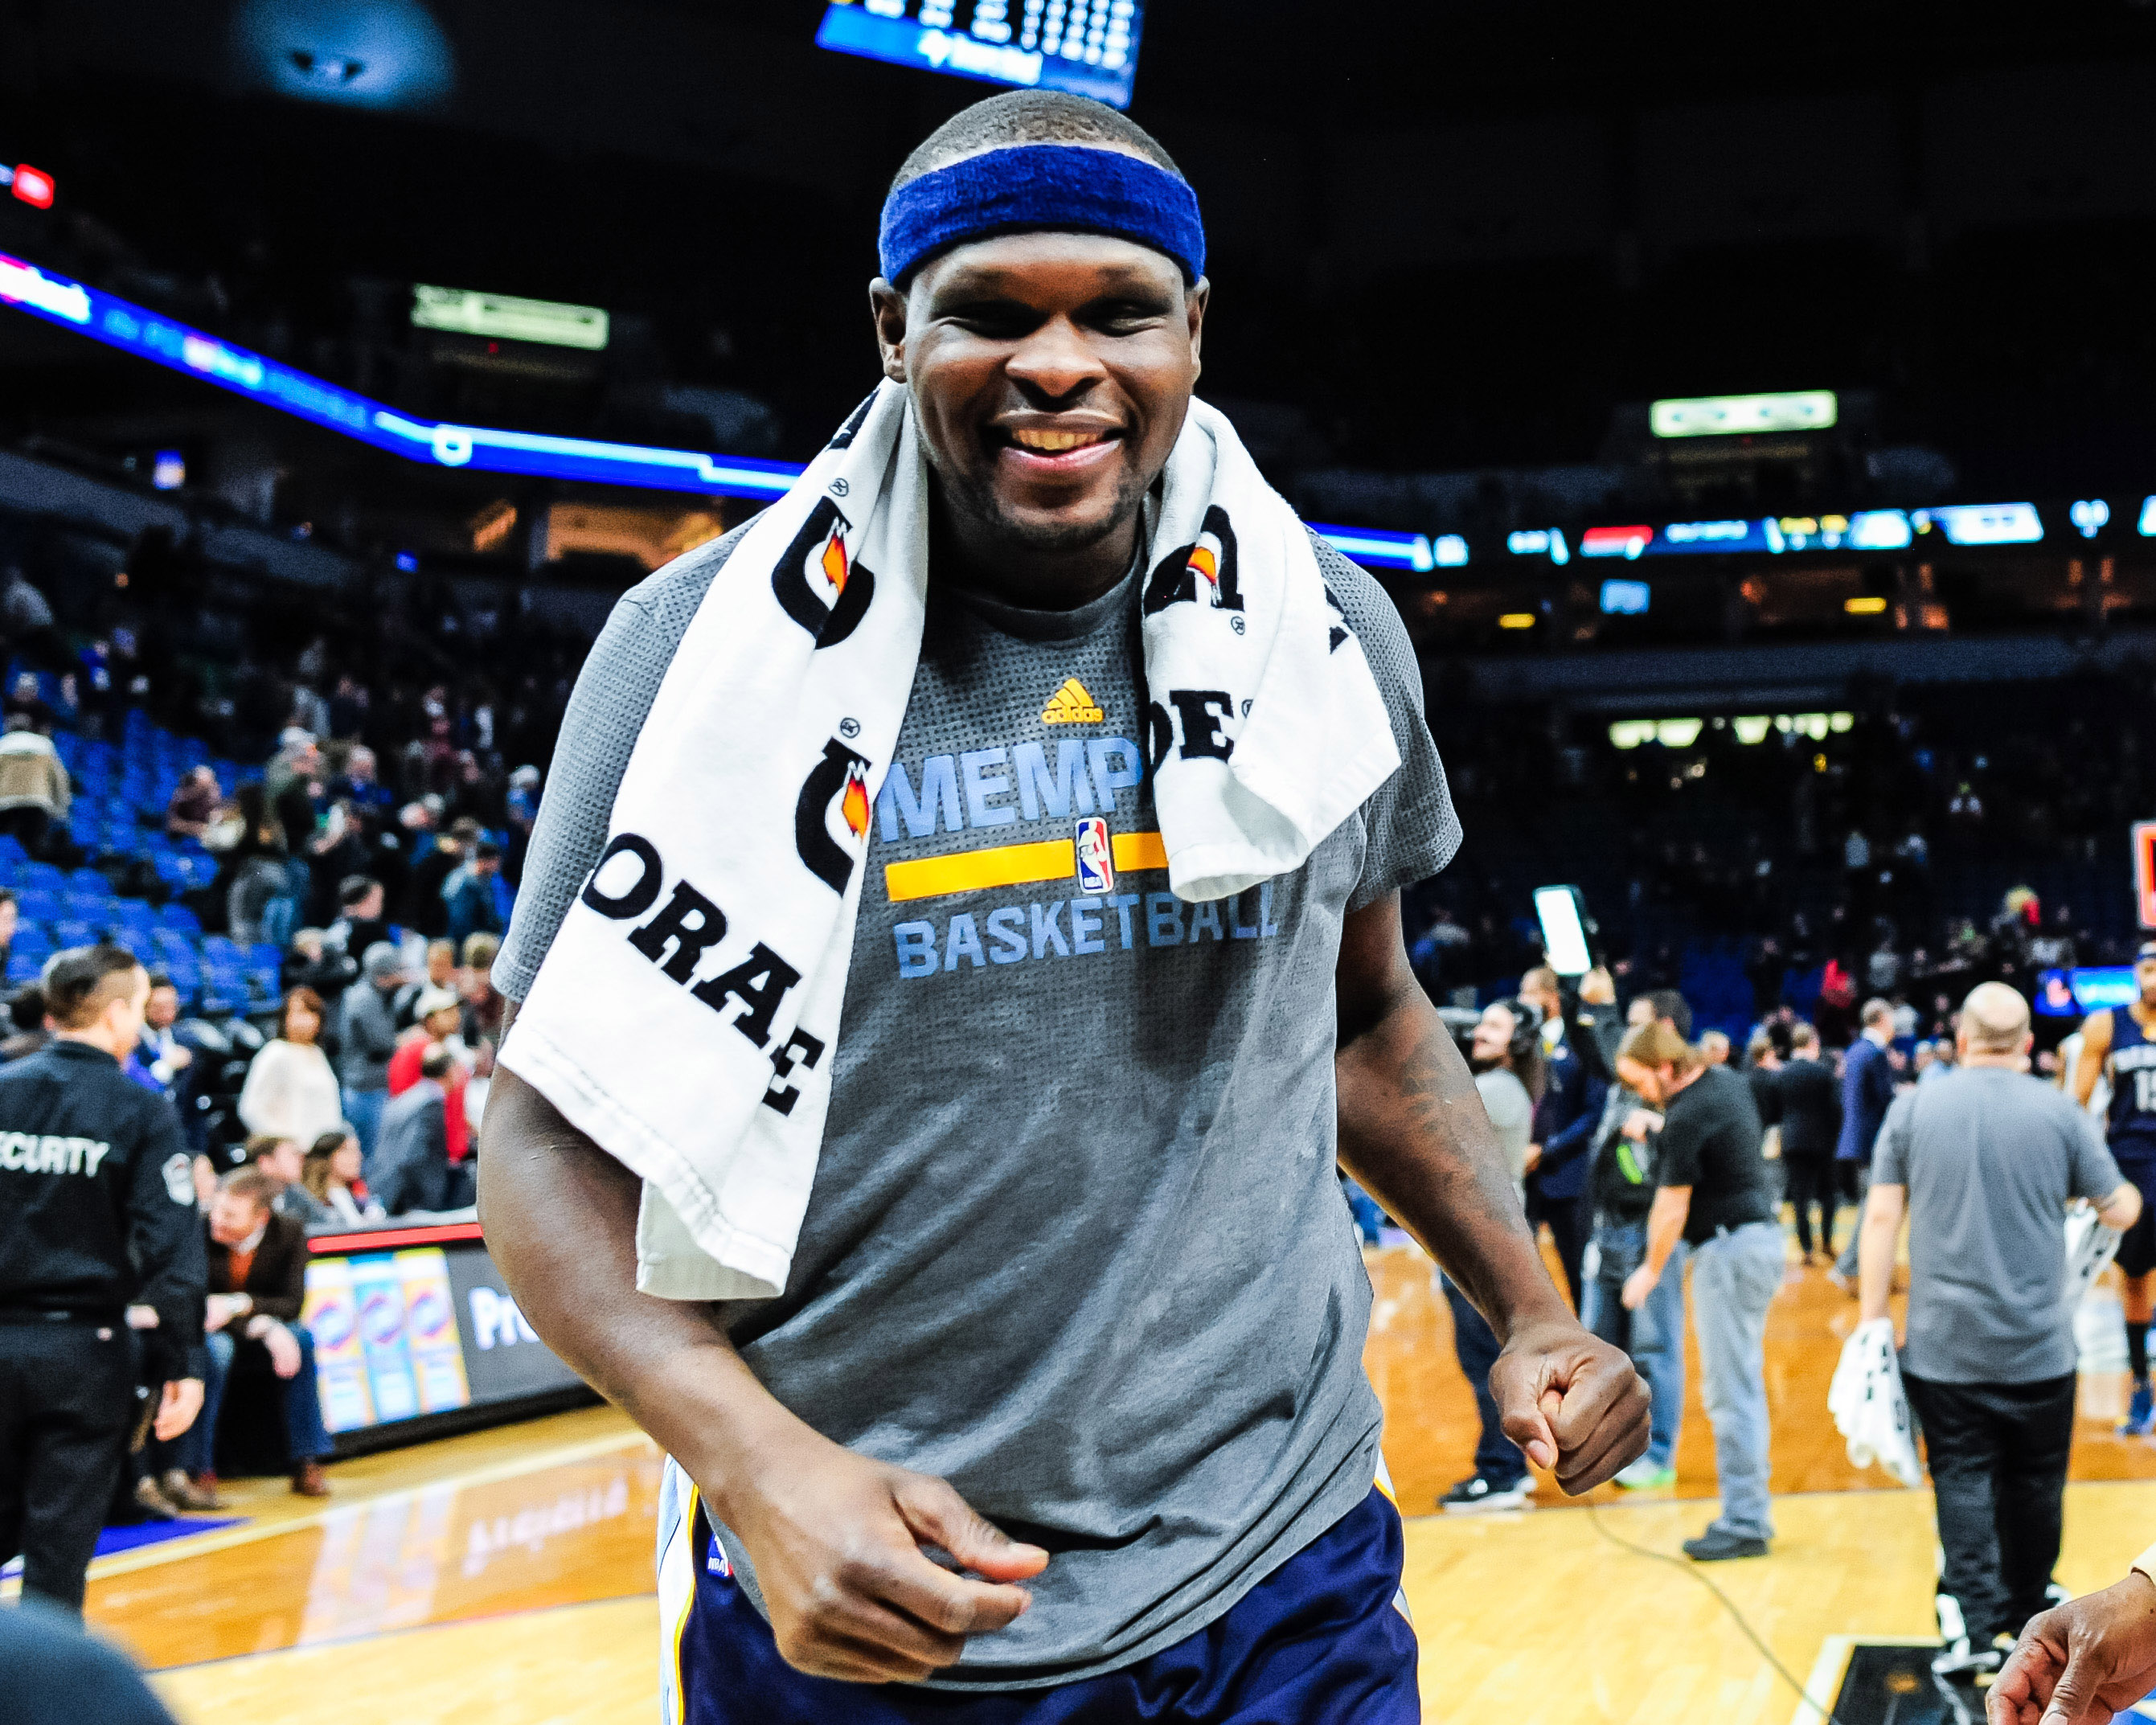 Feb 4, 2017; Minneapolis, MN, USA; Memphis Grizzlies forward Zach Randolph (50) walks off the court after the game against the Minnesota Timberwolves at Target Center. The Grizzlies won 107-99. Mandatory Credit: Jeffrey Becker-USA TODAY Sports